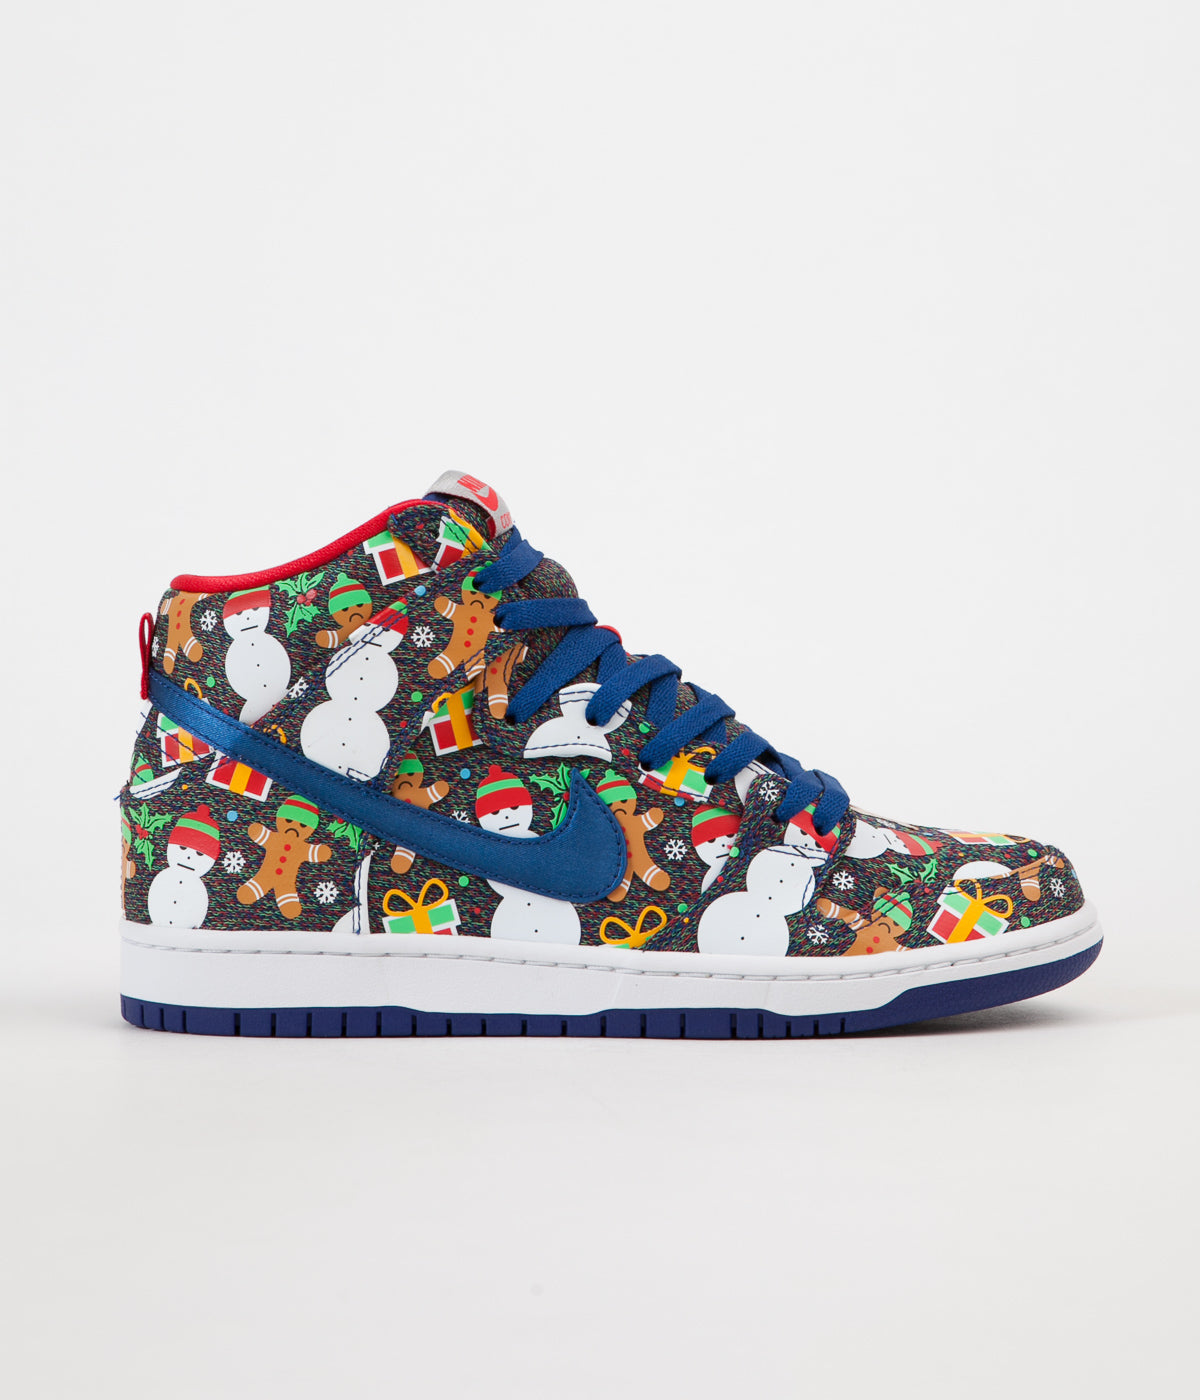 ... Nike SB x Concepts Dunk High 'Ugly Sweater' Shoes - Blue Ribbon / Blue  ...